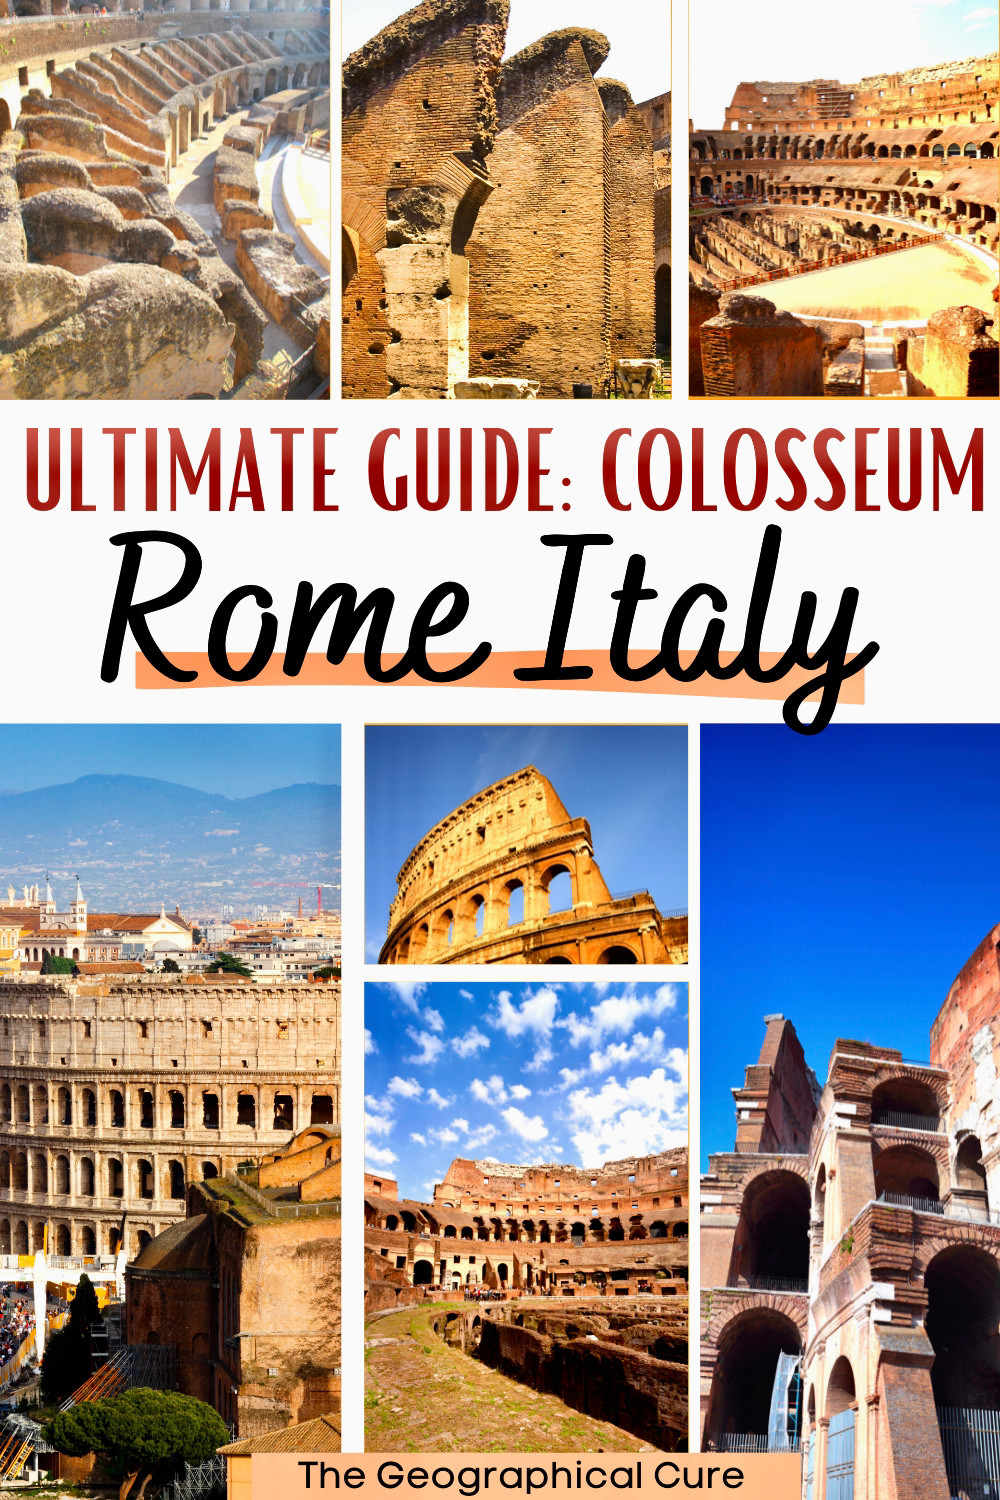 complete guide to visiting Rome's Colosseum -- history, construction, and what to see inside